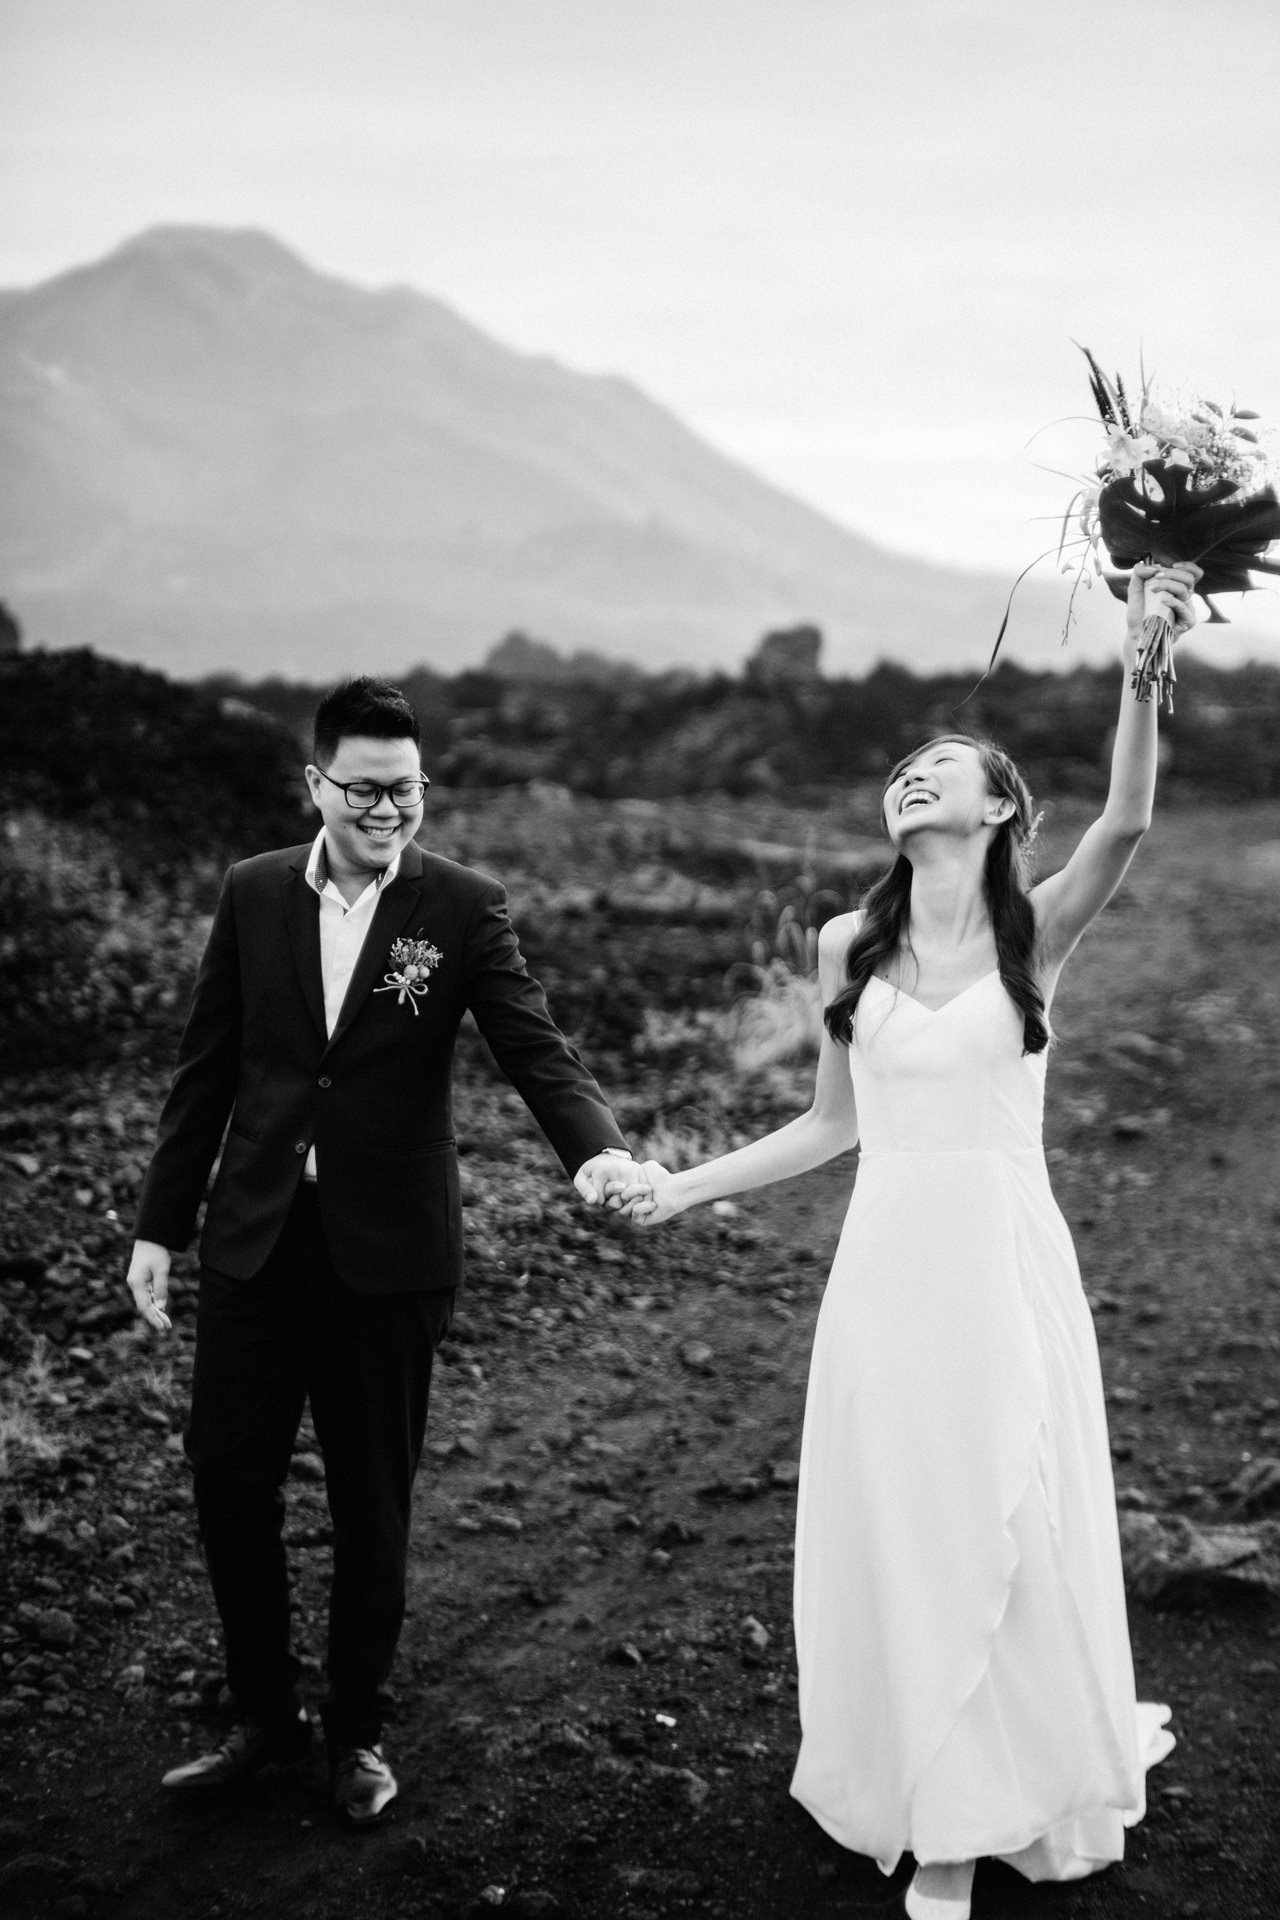 S&Y: Batur Volcano and Nungnung Waterfall Prewedding - Bali Prewedding Photographer 11